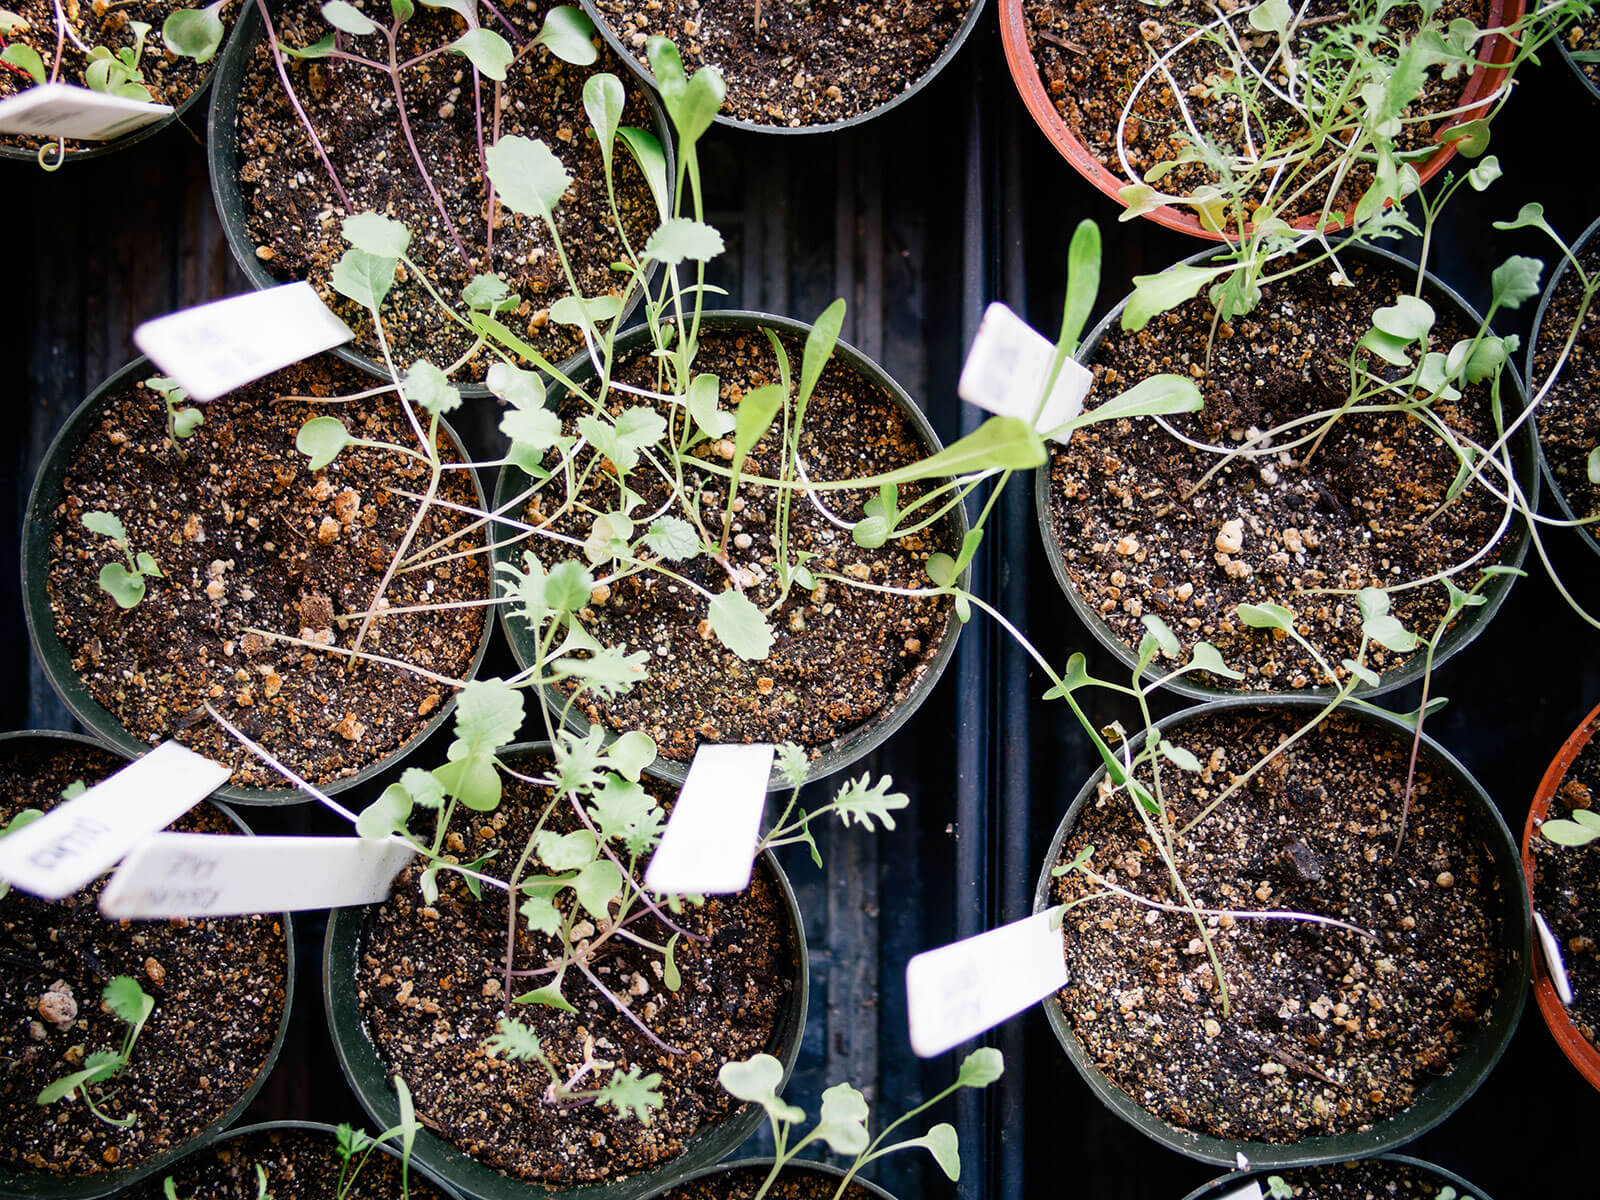 Indoor seedlings often turn leggy when grown in a window due to insufficient light